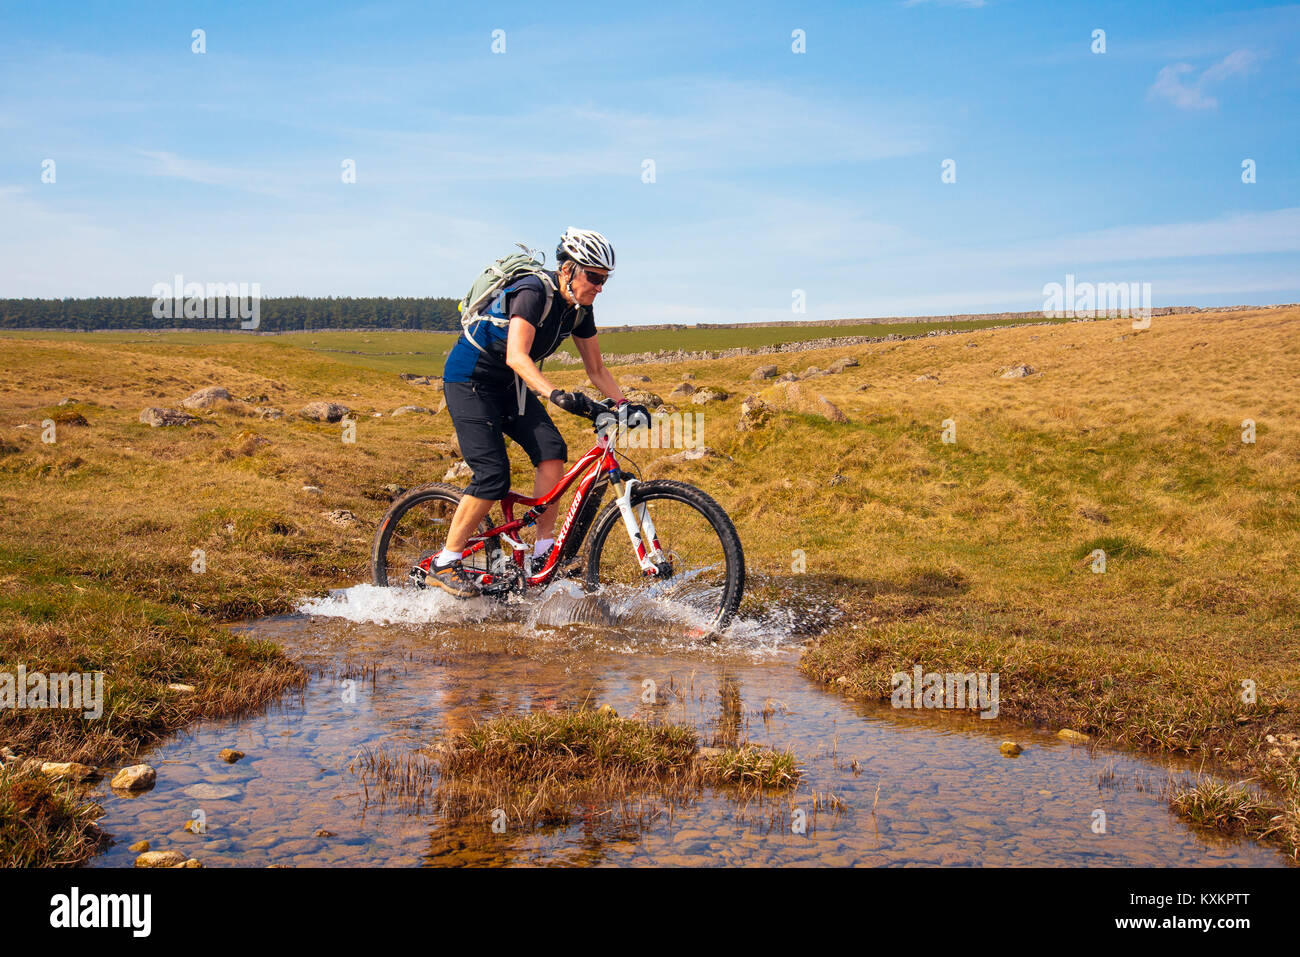 Female mountain biker splashing through a ford on Crosby Ravensworth Fell in the Yorkshire Dales National Park - Stock Image